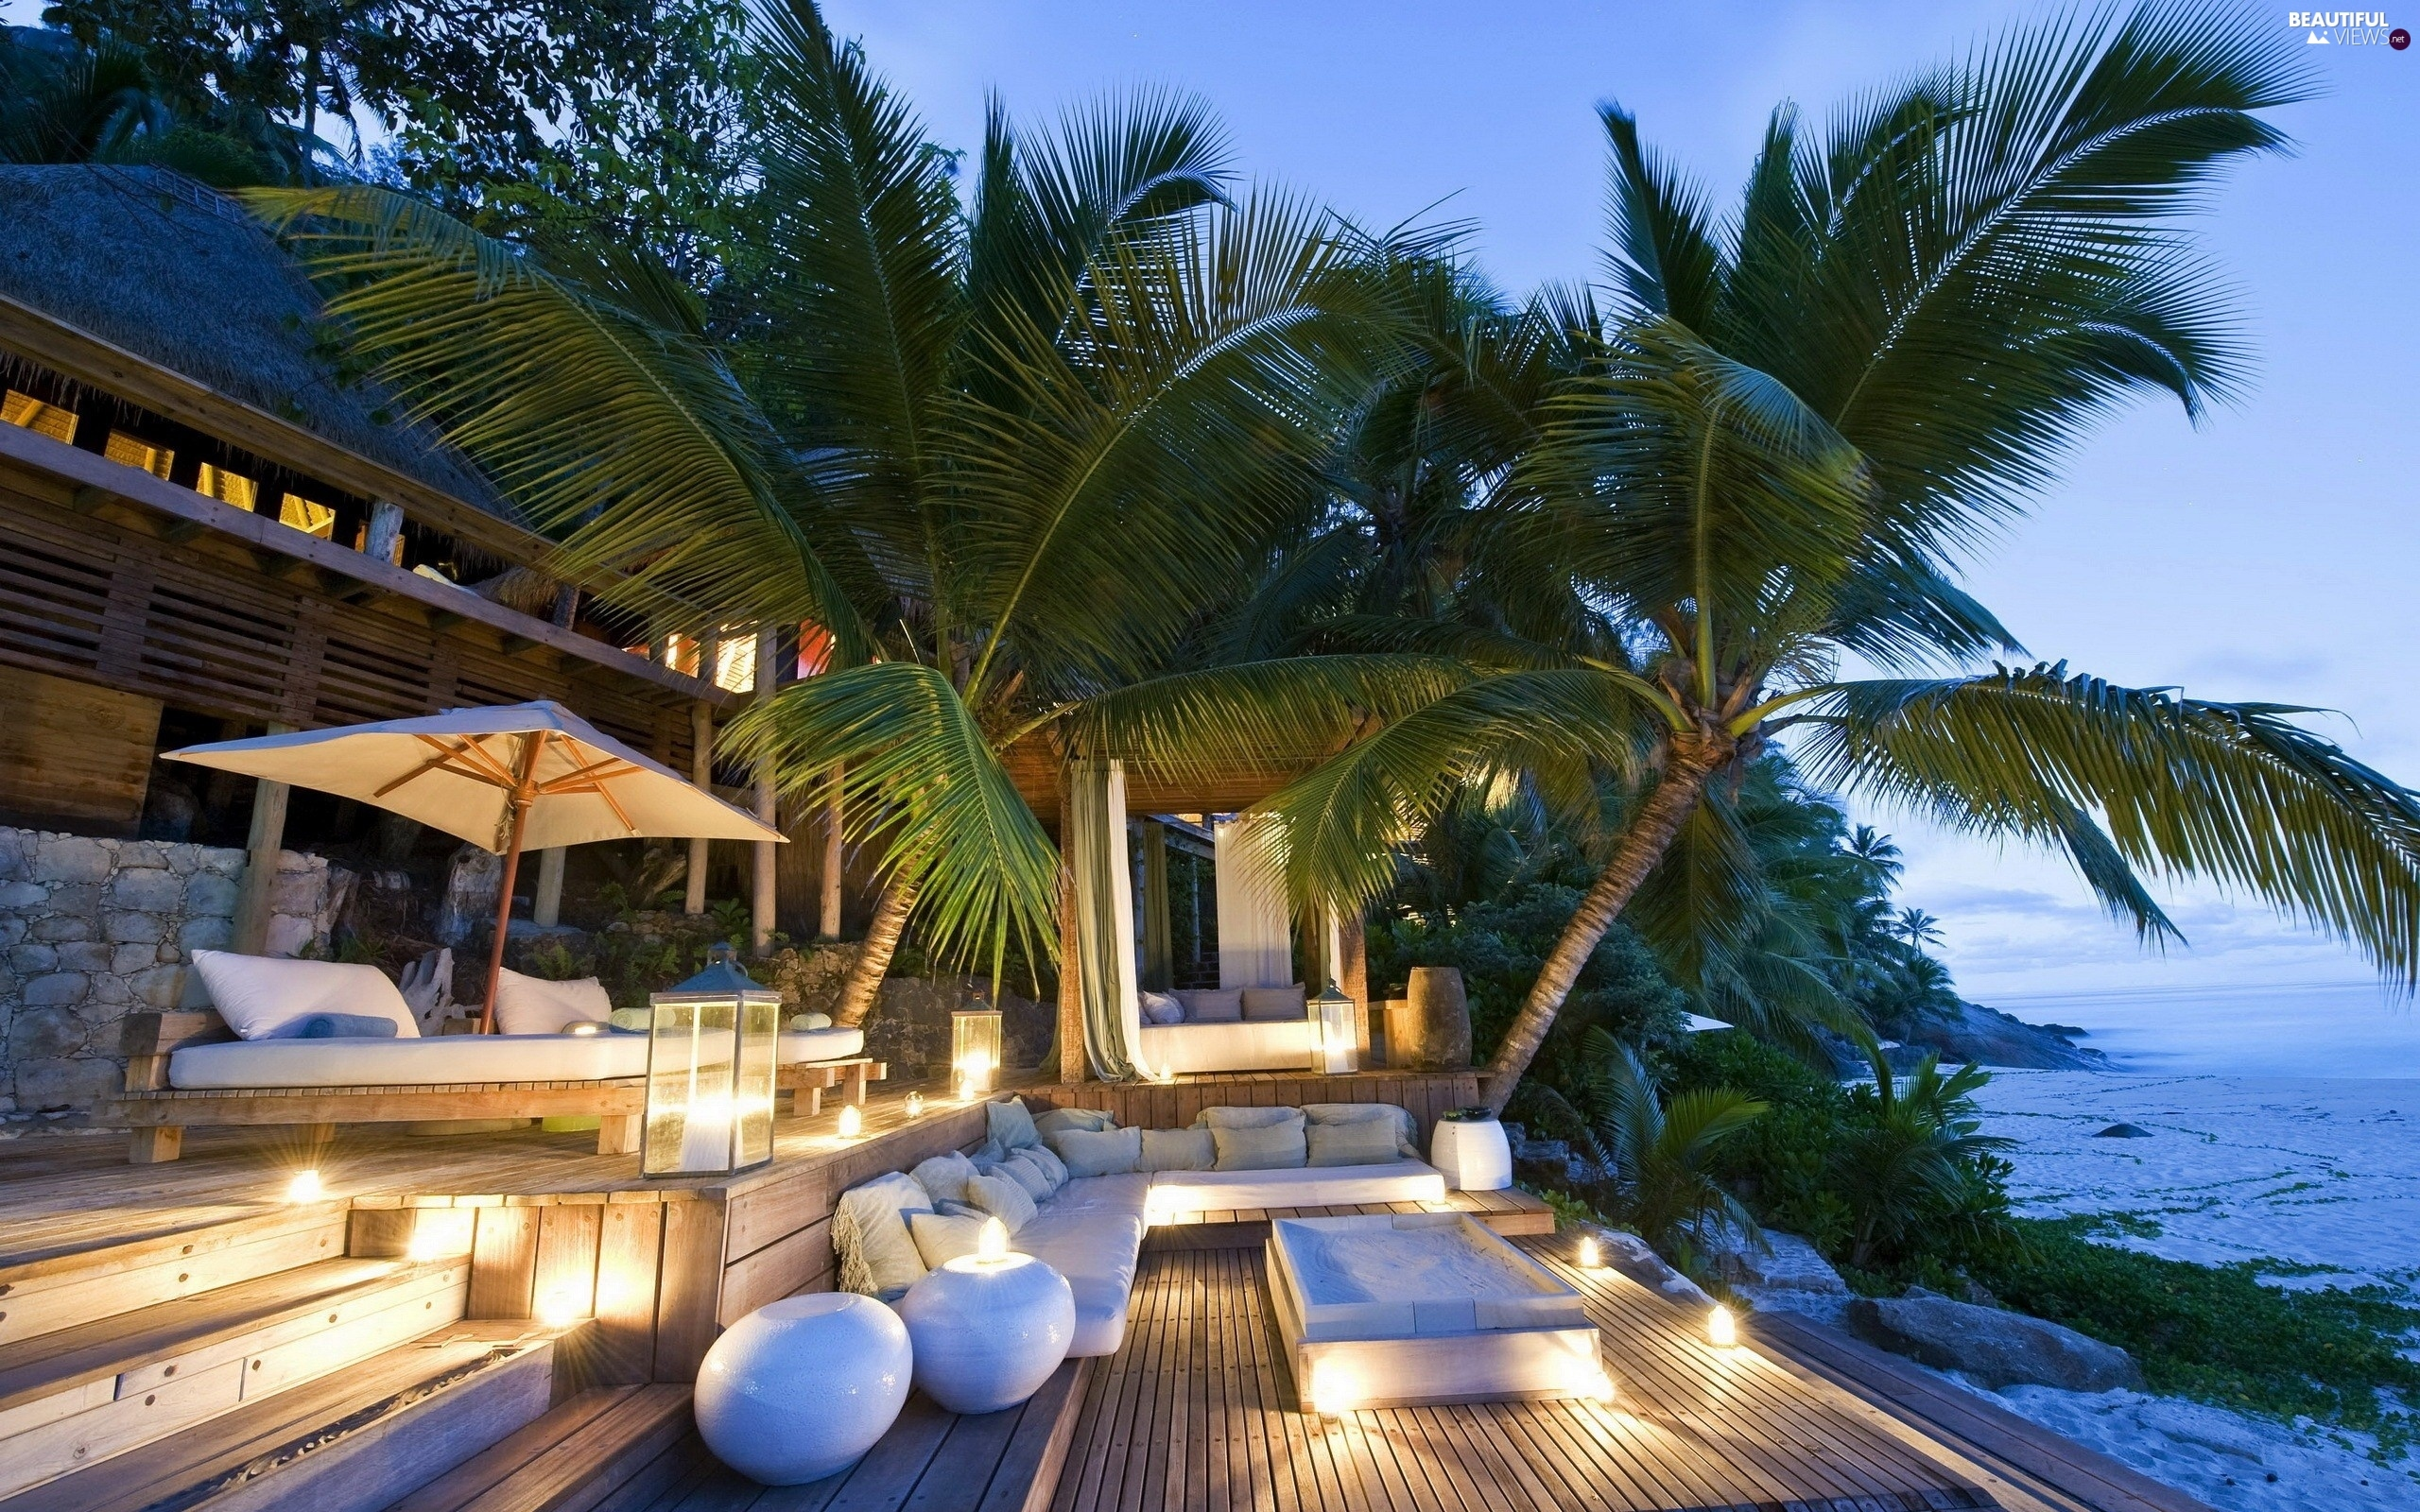 Amazing Candles, Patio, Palms